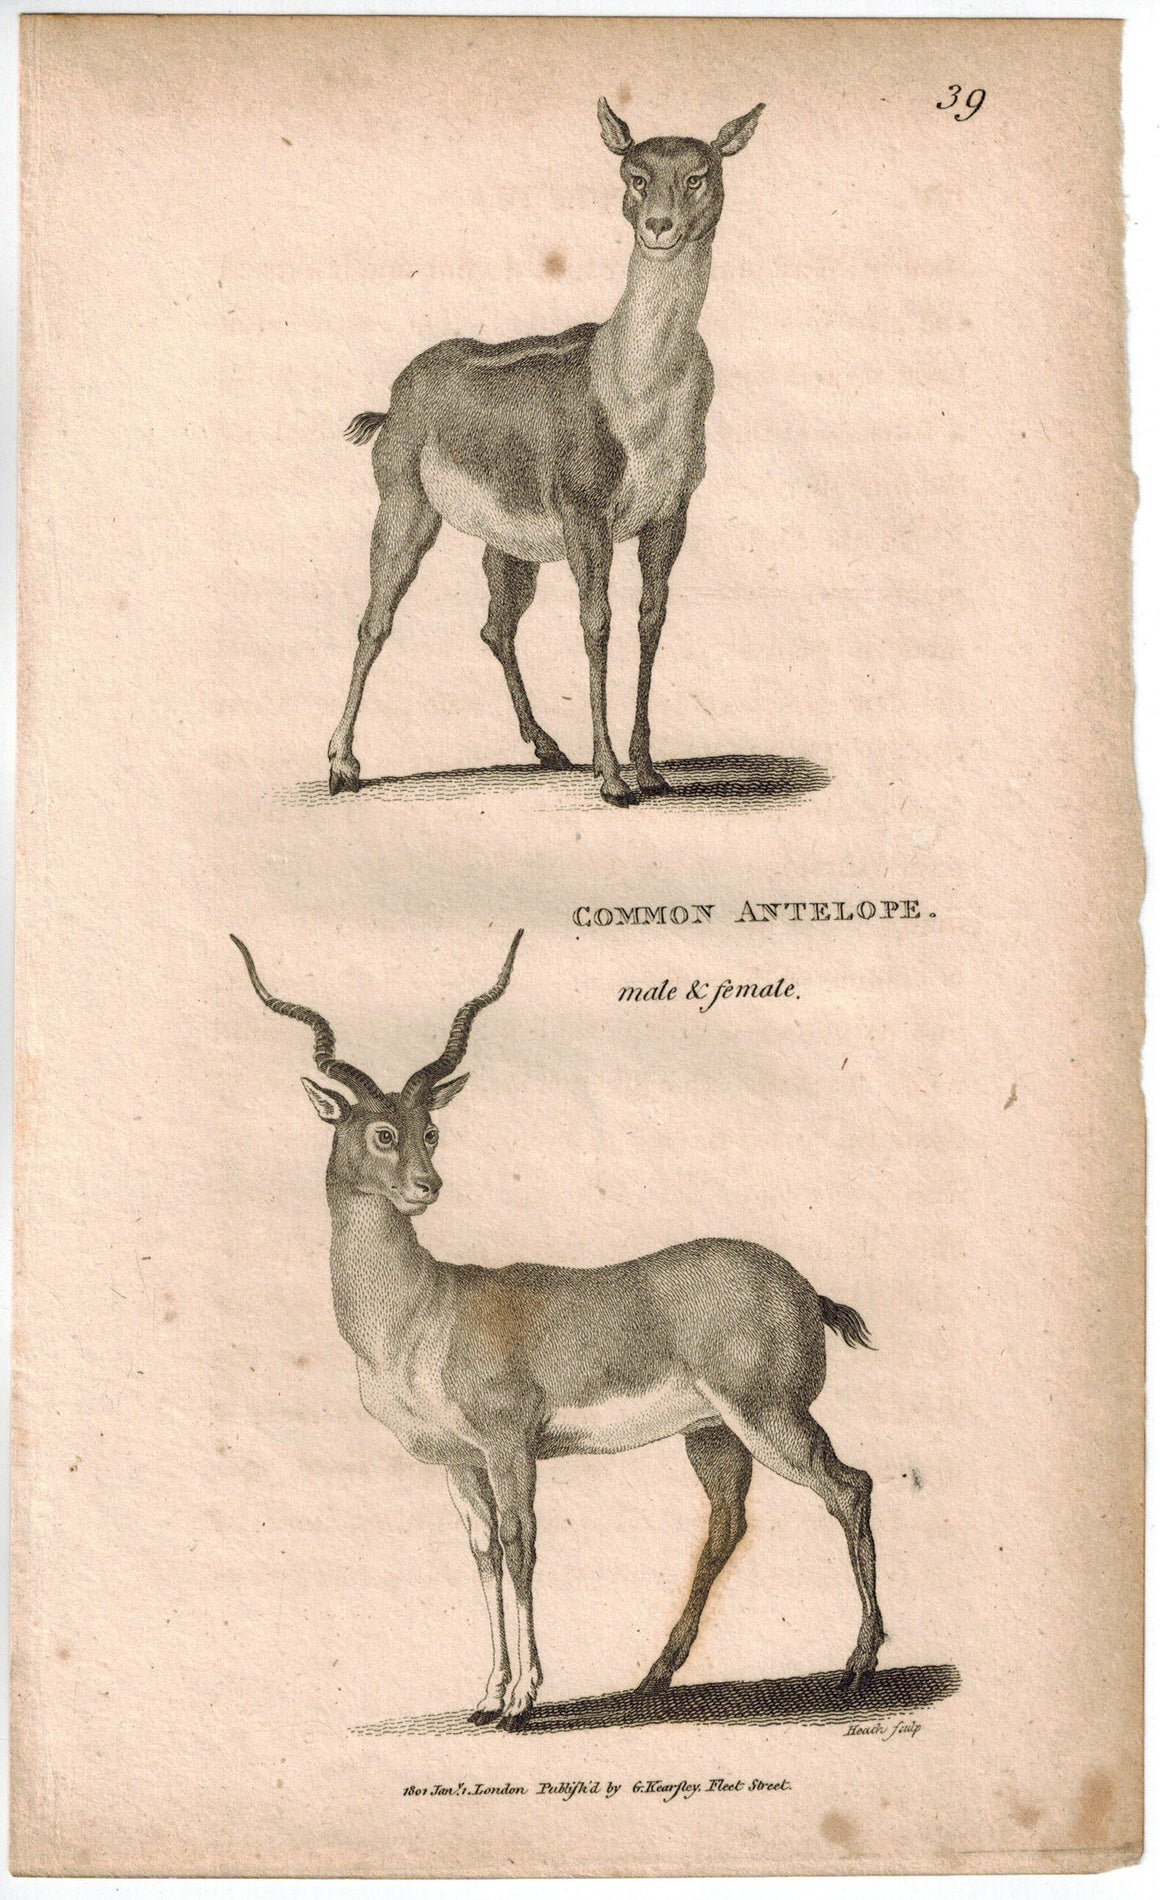 Common Antelope Print 1809 George Shaw Original Engraving